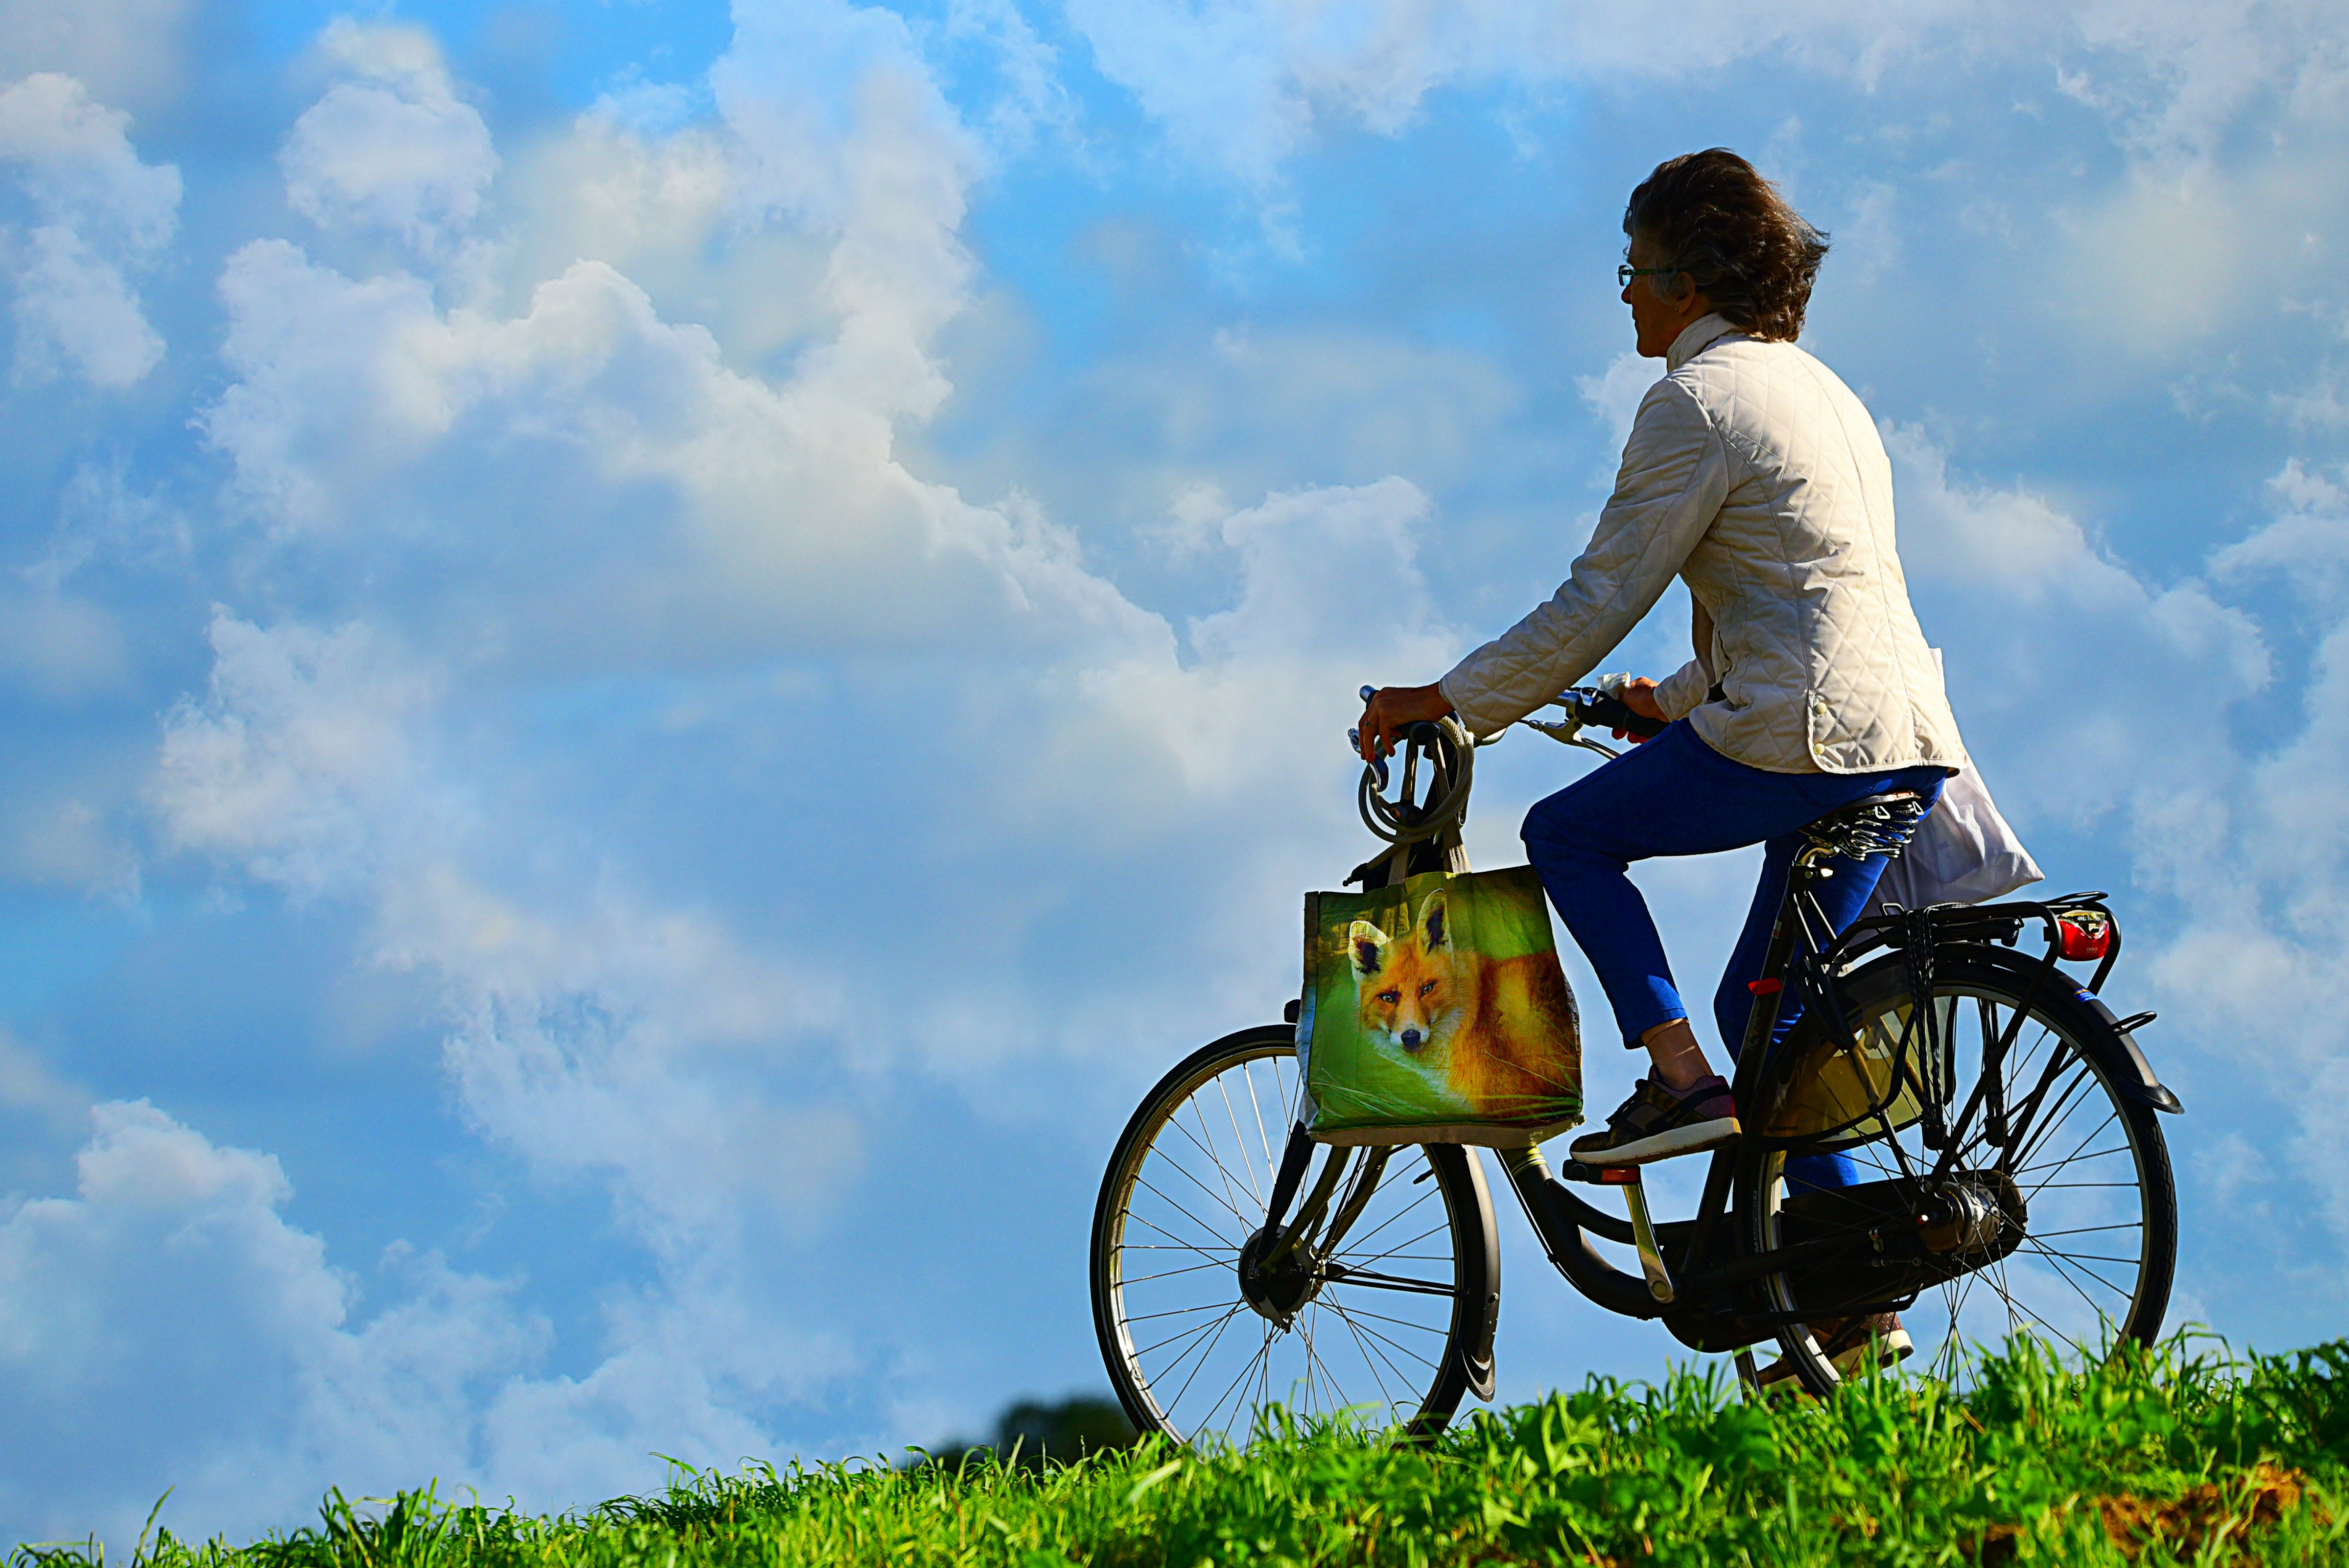 Cyclist,person, cyclist, bicycle, grass